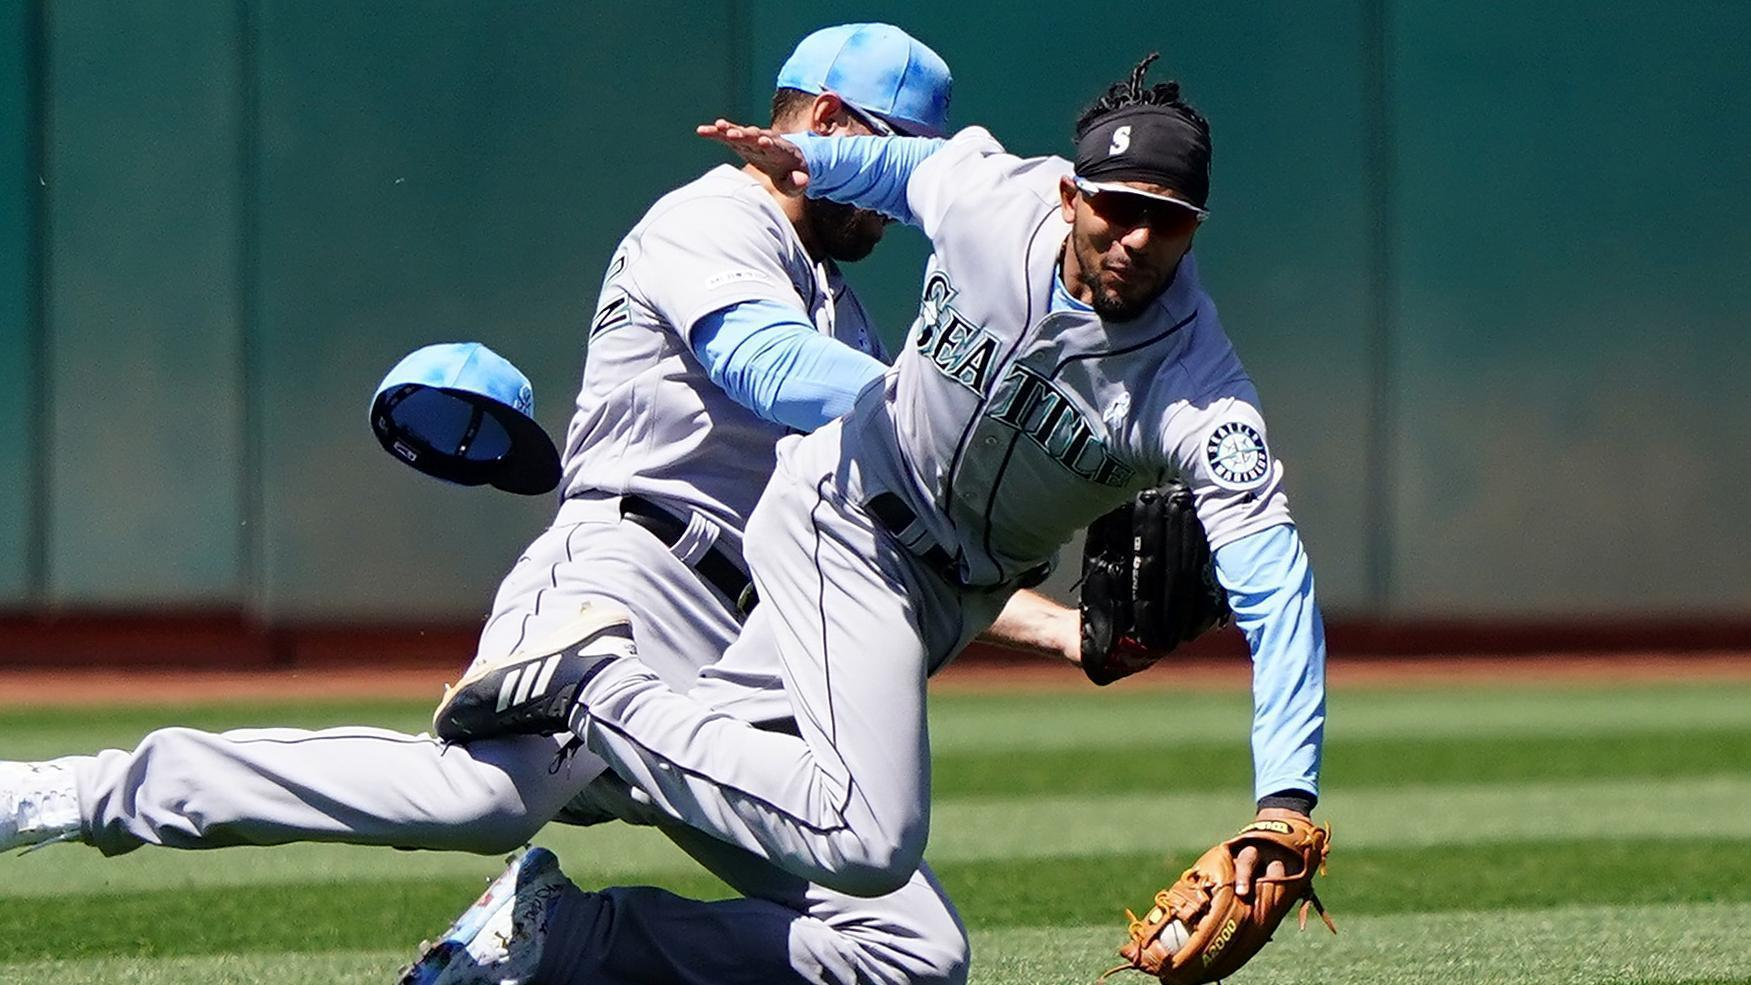 Crawford and Williamson collide on popup